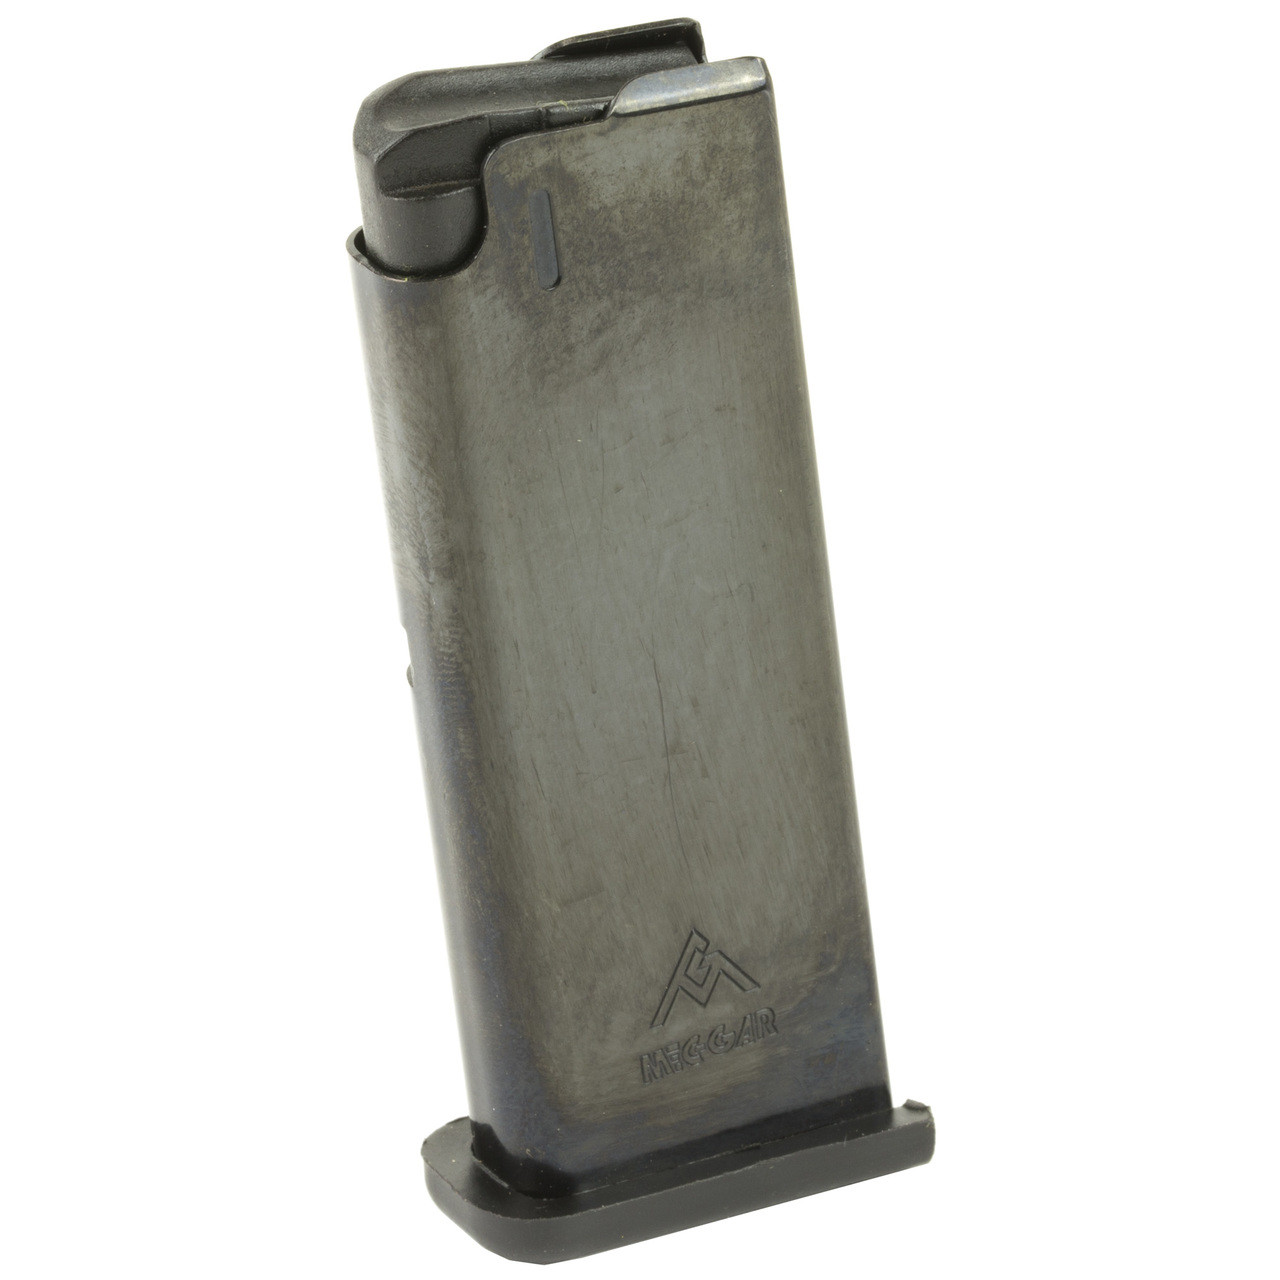 Kel-Tec Magazine, 32 ACP, 7Rd, Fits P32, Blue Finish P32-36, UPC  :640832001914